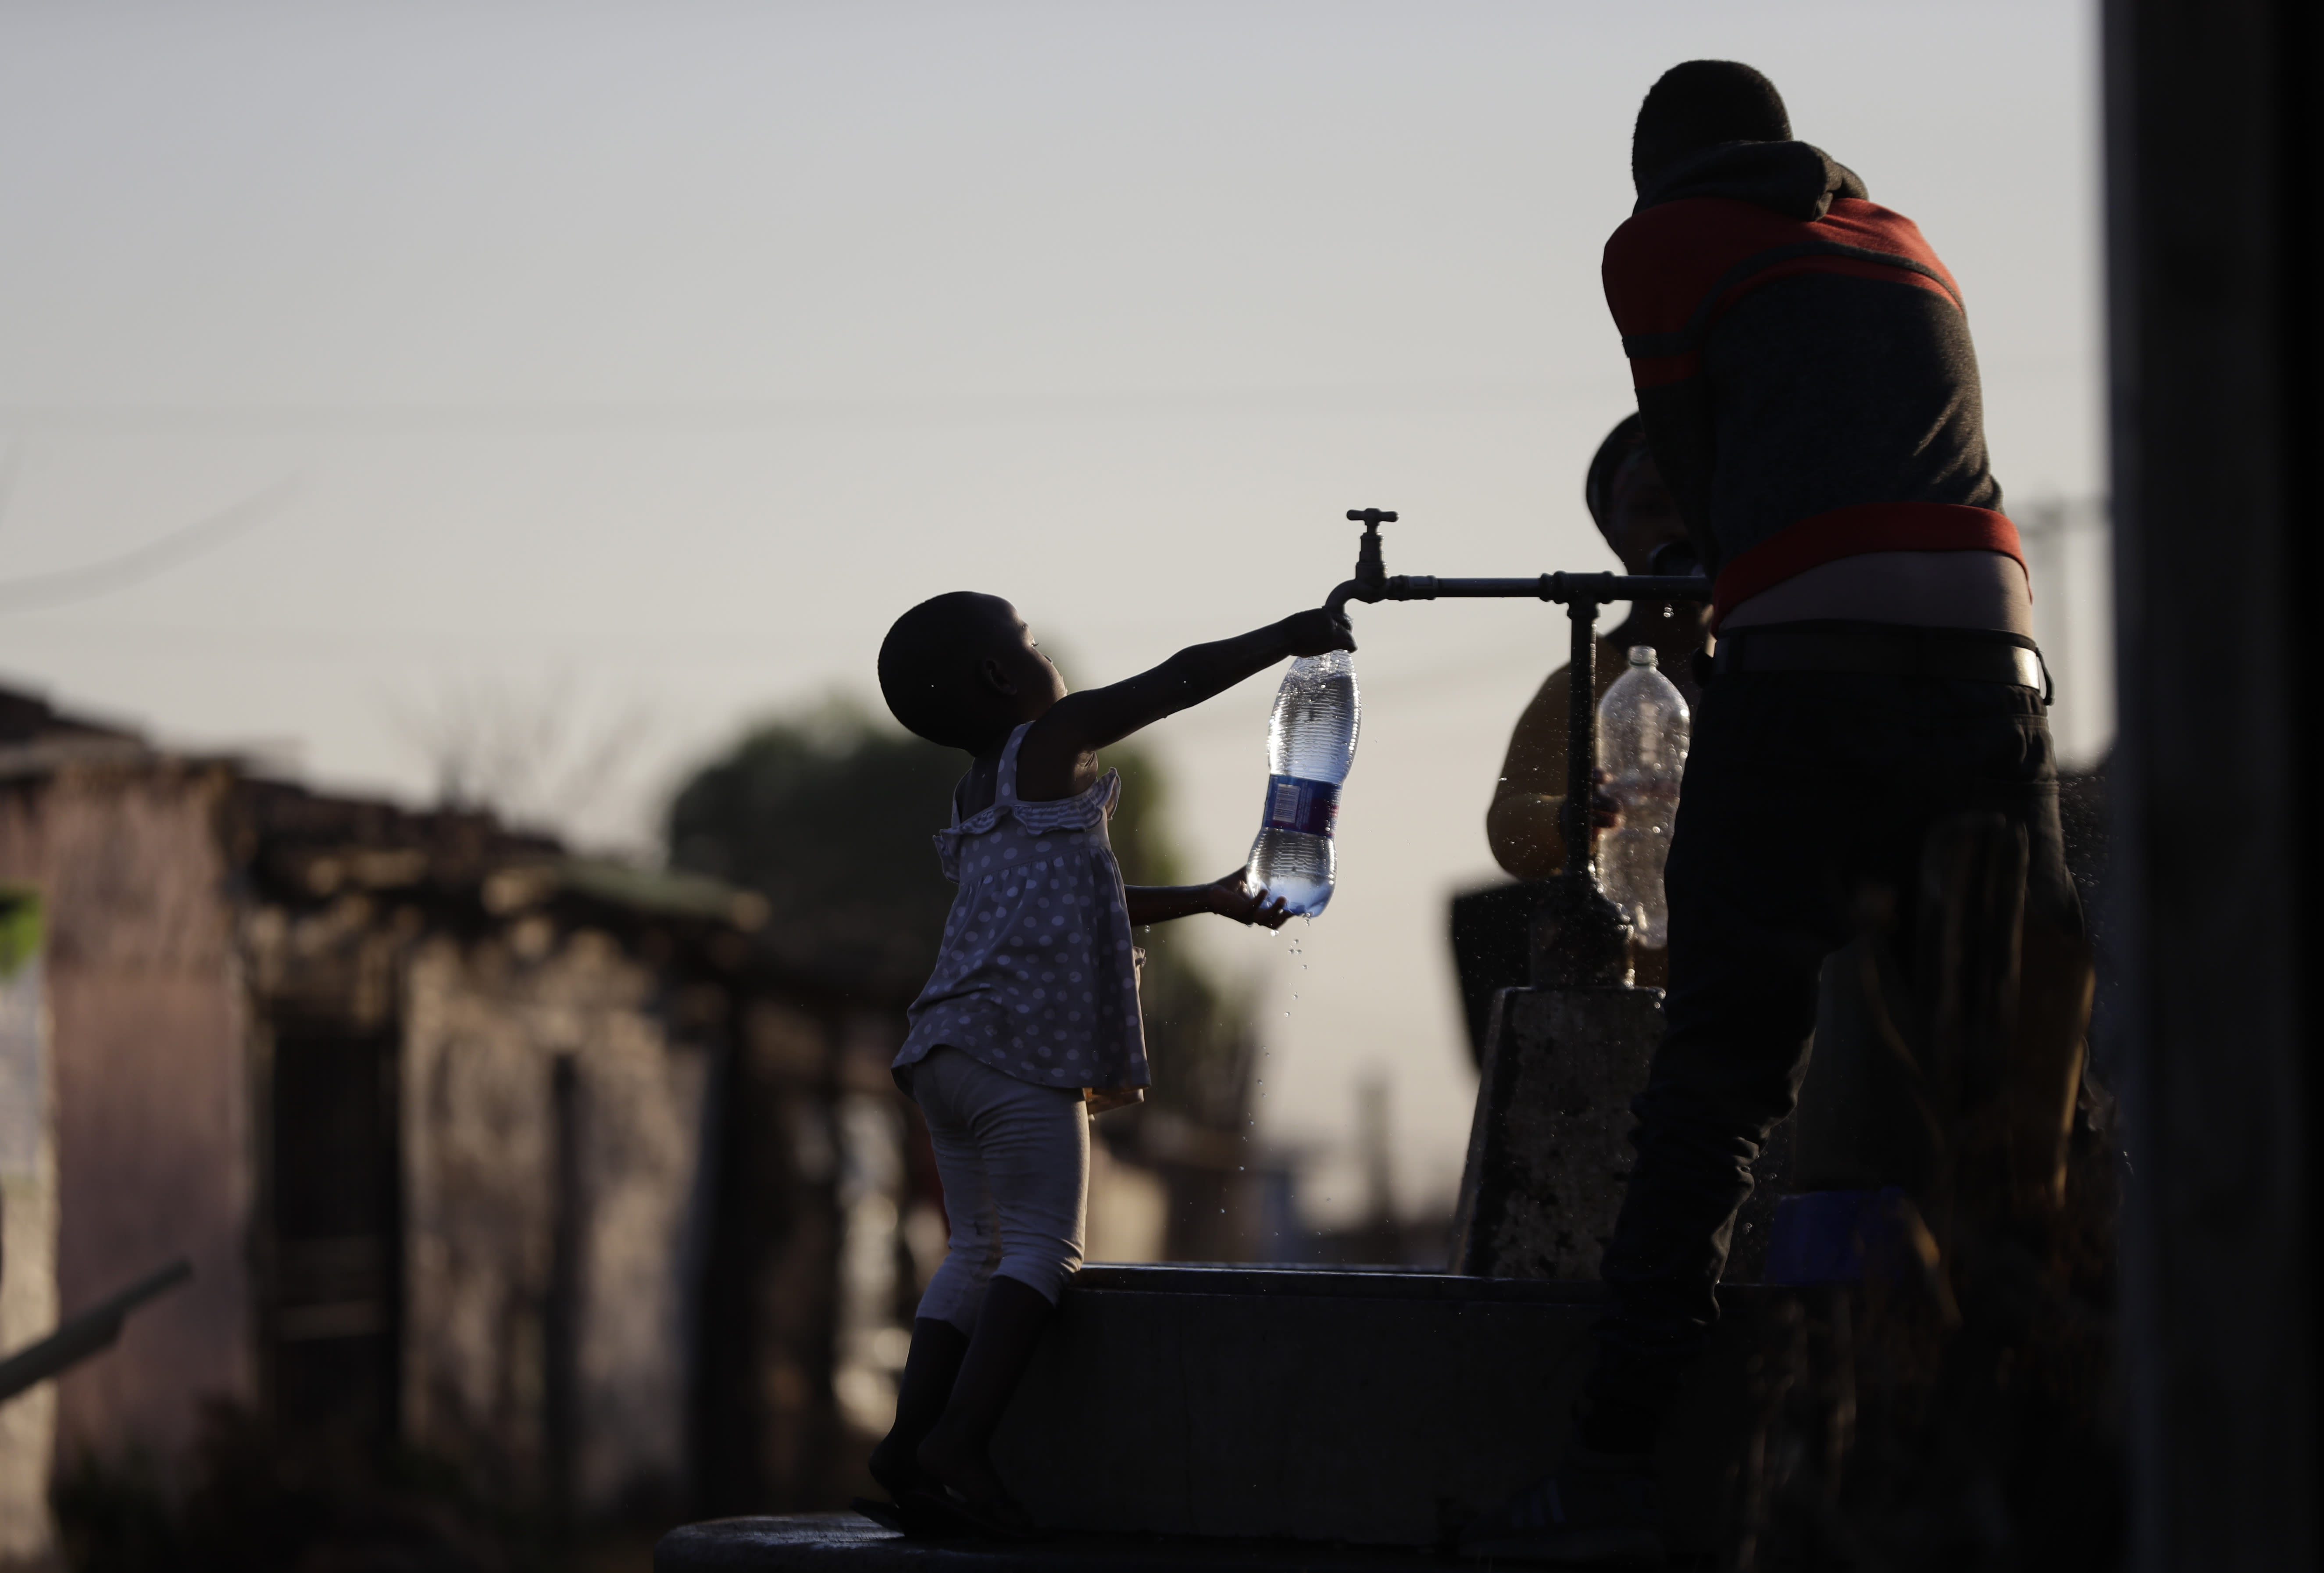 A child fills a bottle with water at a communal tap in the Katlehong Township near Johannesburg, Tuesday, Sept. 8, 2020. Official statistics show that South Africa's economy has sunk deeper into recession, with its gross domestic product for the second quarter of 2020 plummeting by 51%, largely as a result of COVID-19 and the country's strict lockdown. (APPhoto/Themba Hadebe)